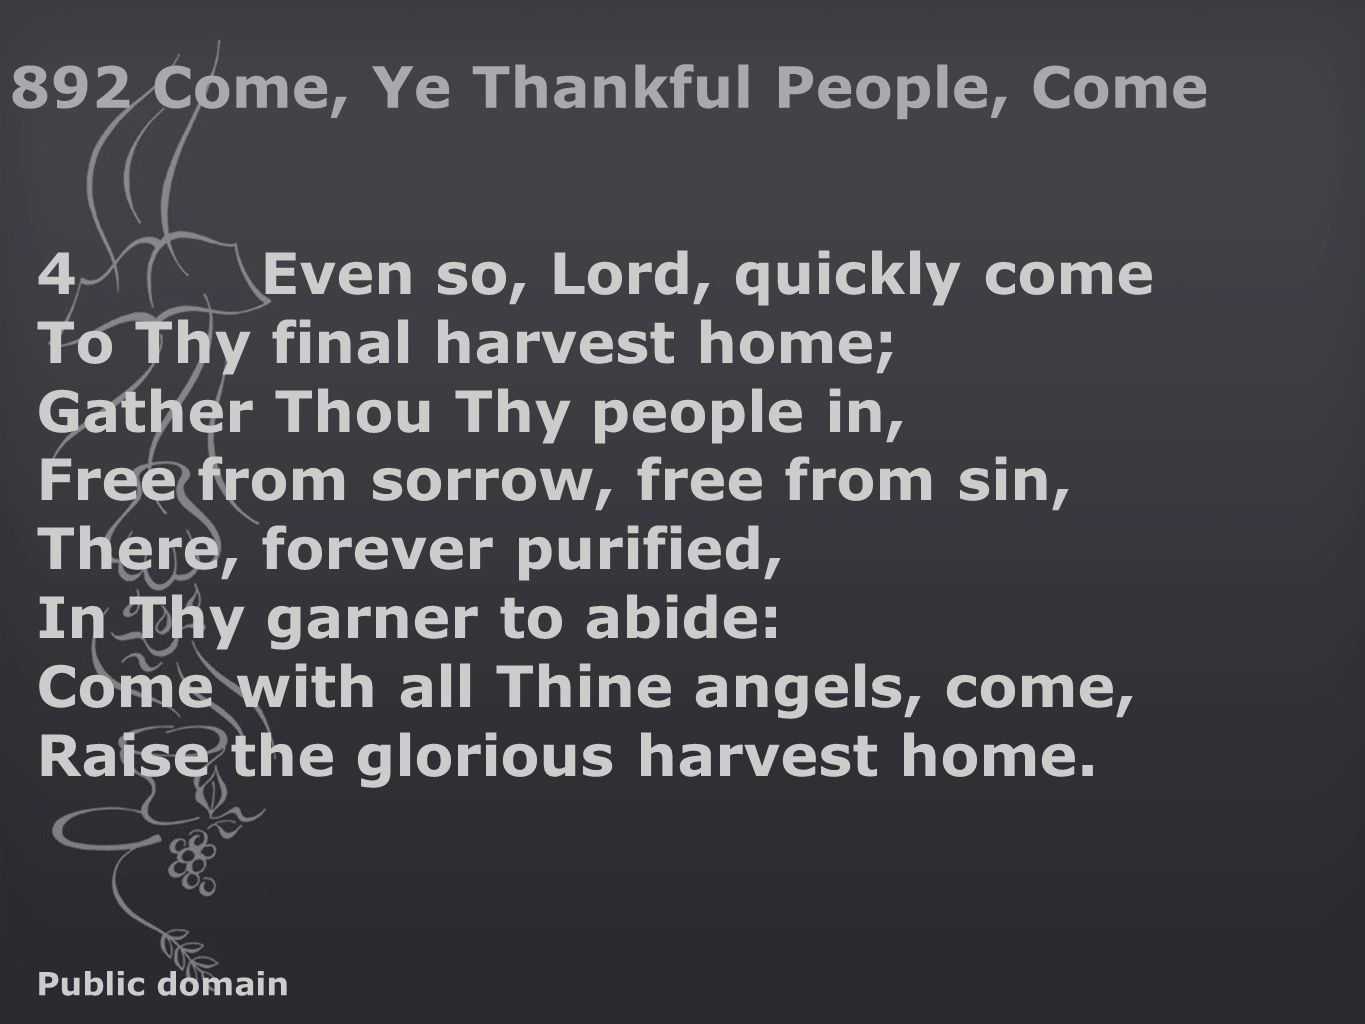 4Even so, Lord, quickly come To Thy final harvest home; Gather Thou Thy people in, Free from sorrow, free from sin, There, forever purified, In Thy garner to abide: Come with all Thine angels, come, Raise the glorious harvest home.